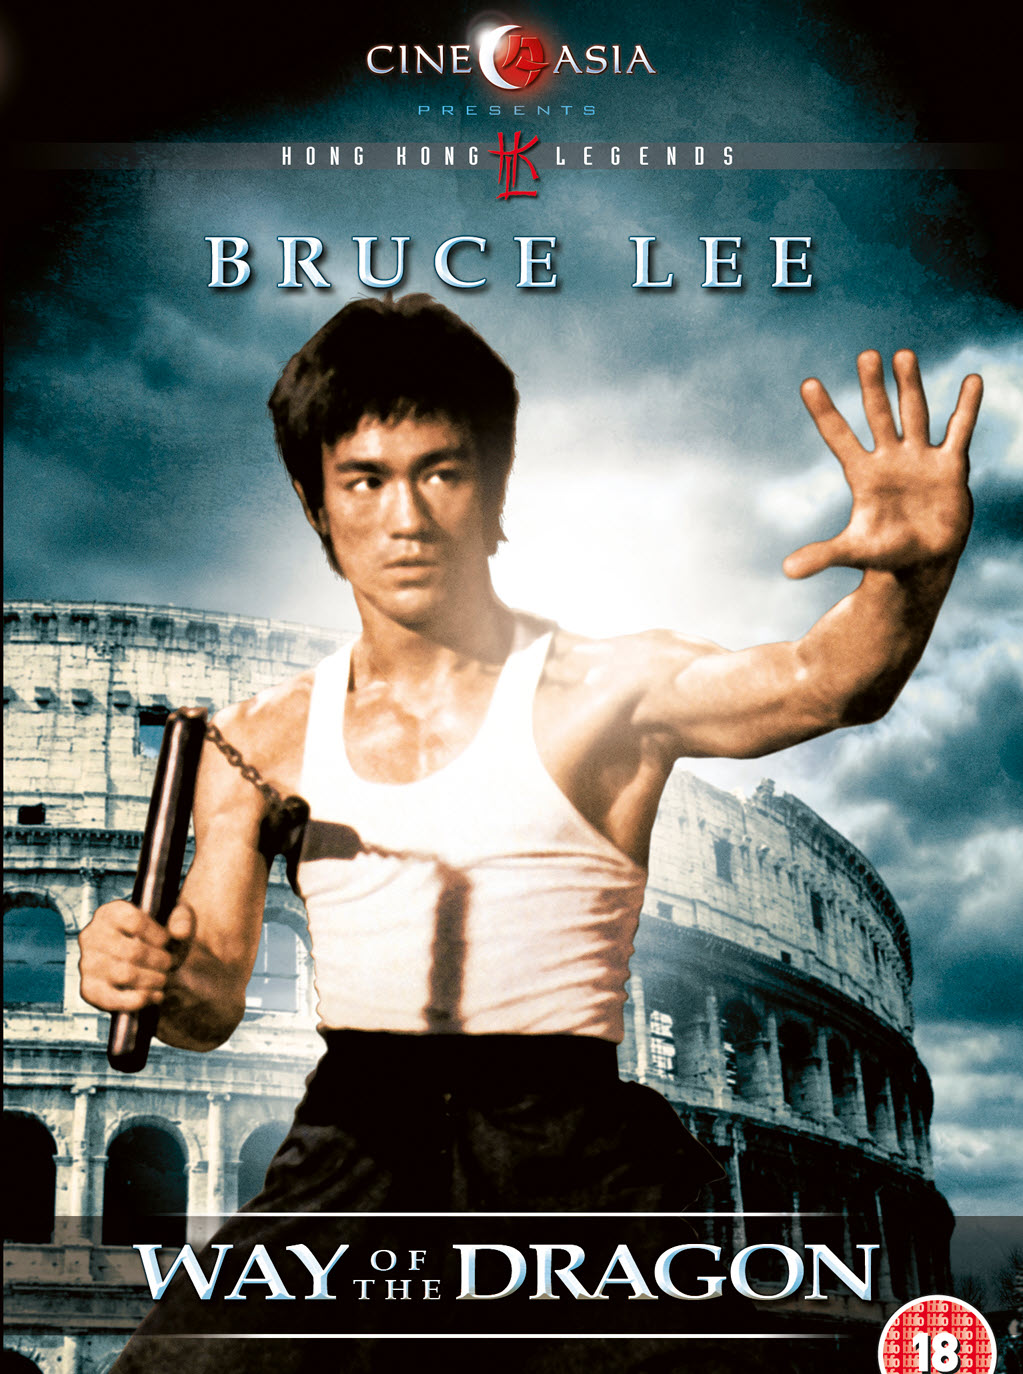 Way of the Dragon with Bruce Lee